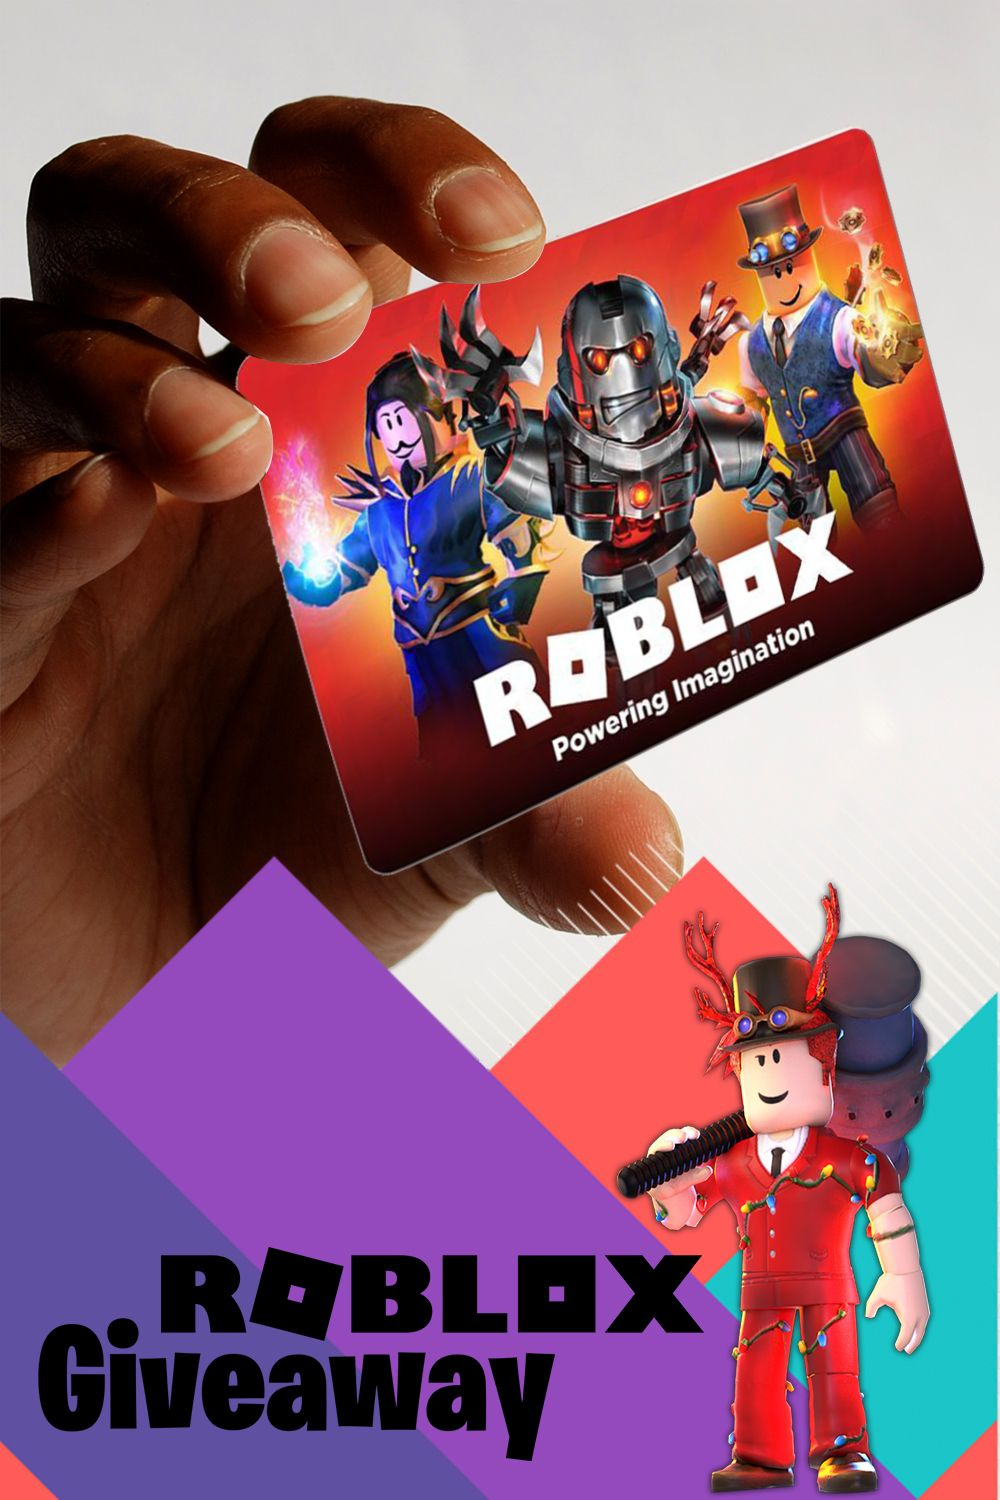 Get free roblox gift card codes 2020 offer in 2020